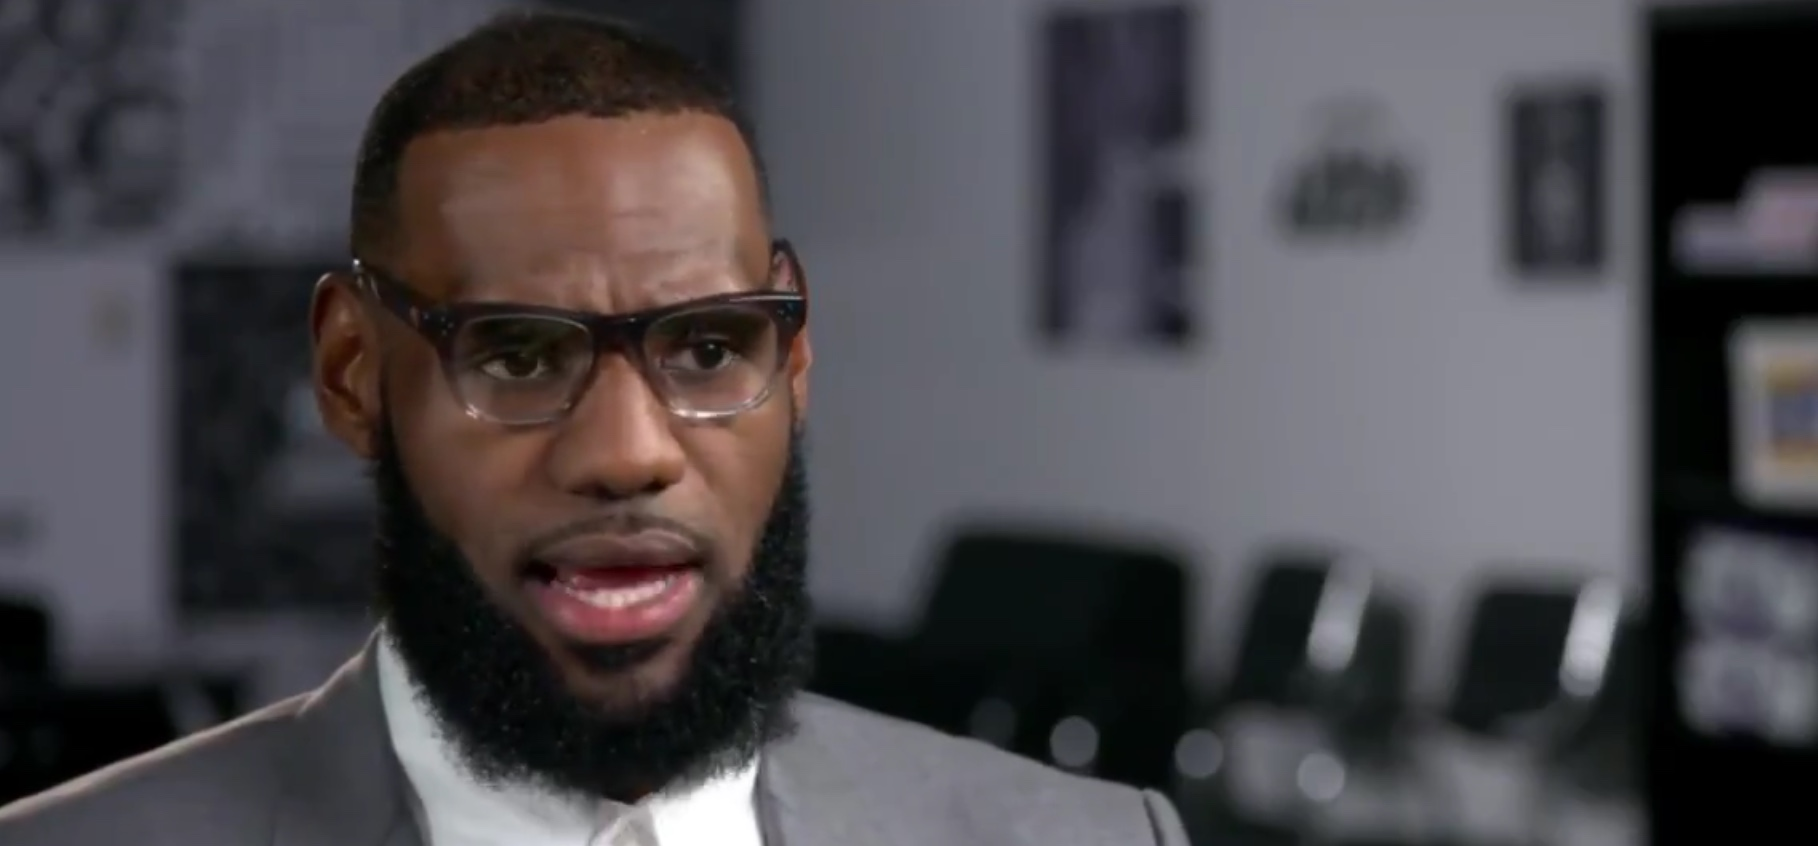 """NBA star LeBron James discusses how his celebrity status allows him to be """"a voice"""" for the dispossessed, July 30, 2019. Twitter screenshot"""